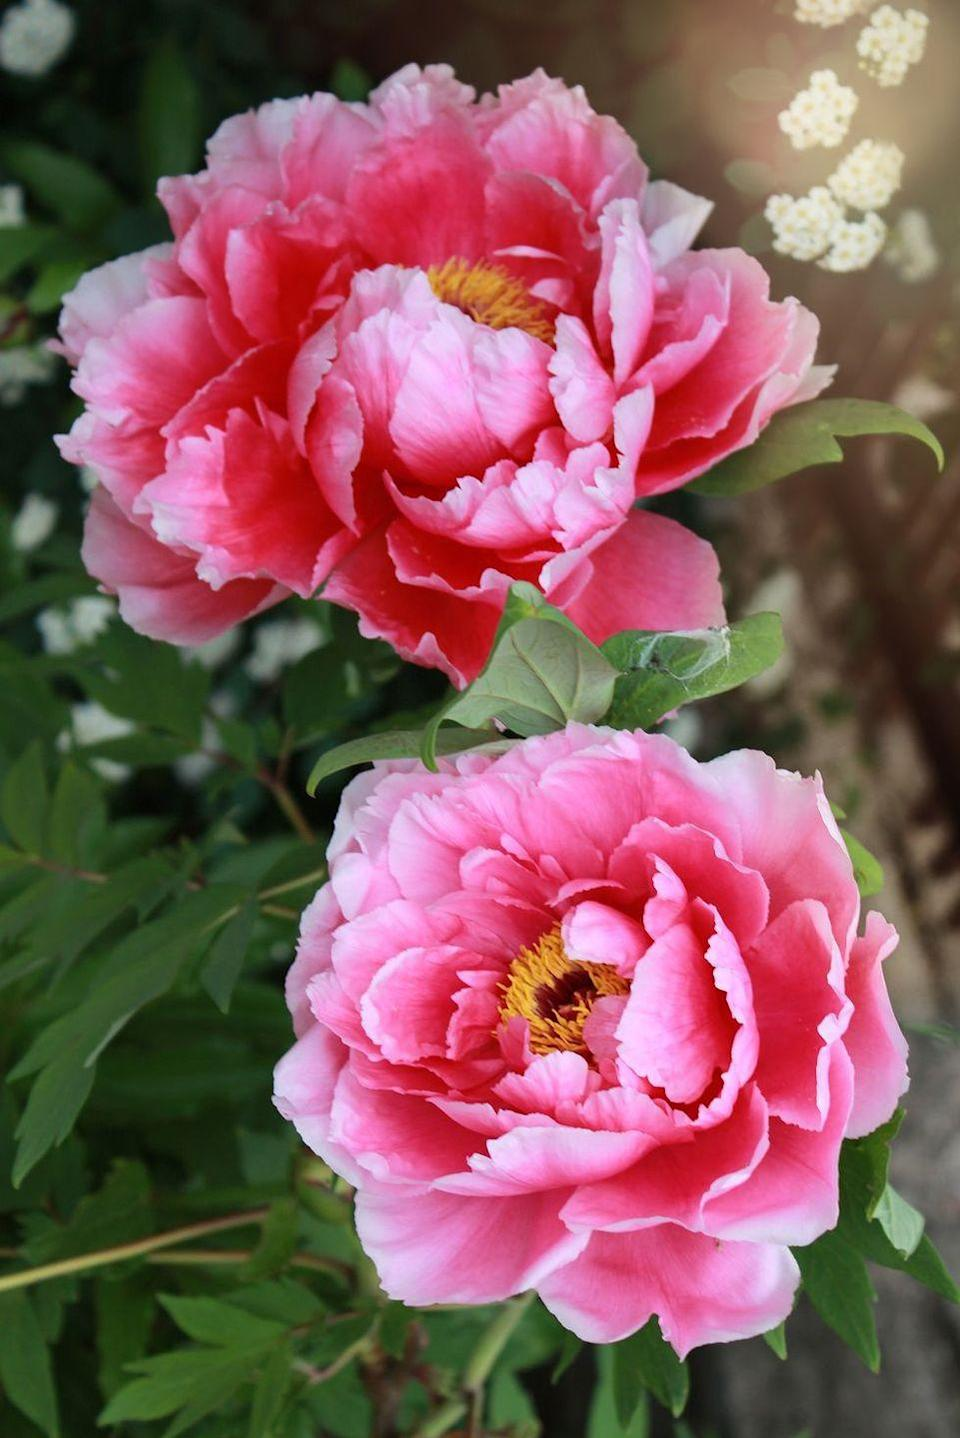 """<p>Oddly enough, these sweet, many-petaled blooms represented """"anger"""" to Victorians. Today, however, peonies are linked to romance, marriage, and even bashfulness.</p><p> <strong>RELATED: </strong><a href=""""https://www.goodhousekeeping.com/home/gardening/a20705642/how-to-grow-your-own-gorgeous-peonies/"""" rel=""""nofollow noopener"""" target=""""_blank"""" data-ylk=""""slk:How to Grow Your Own Gorgeous Peonies"""" class=""""link rapid-noclick-resp"""">How to Grow Your Own Gorgeous Peonies</a></p>"""